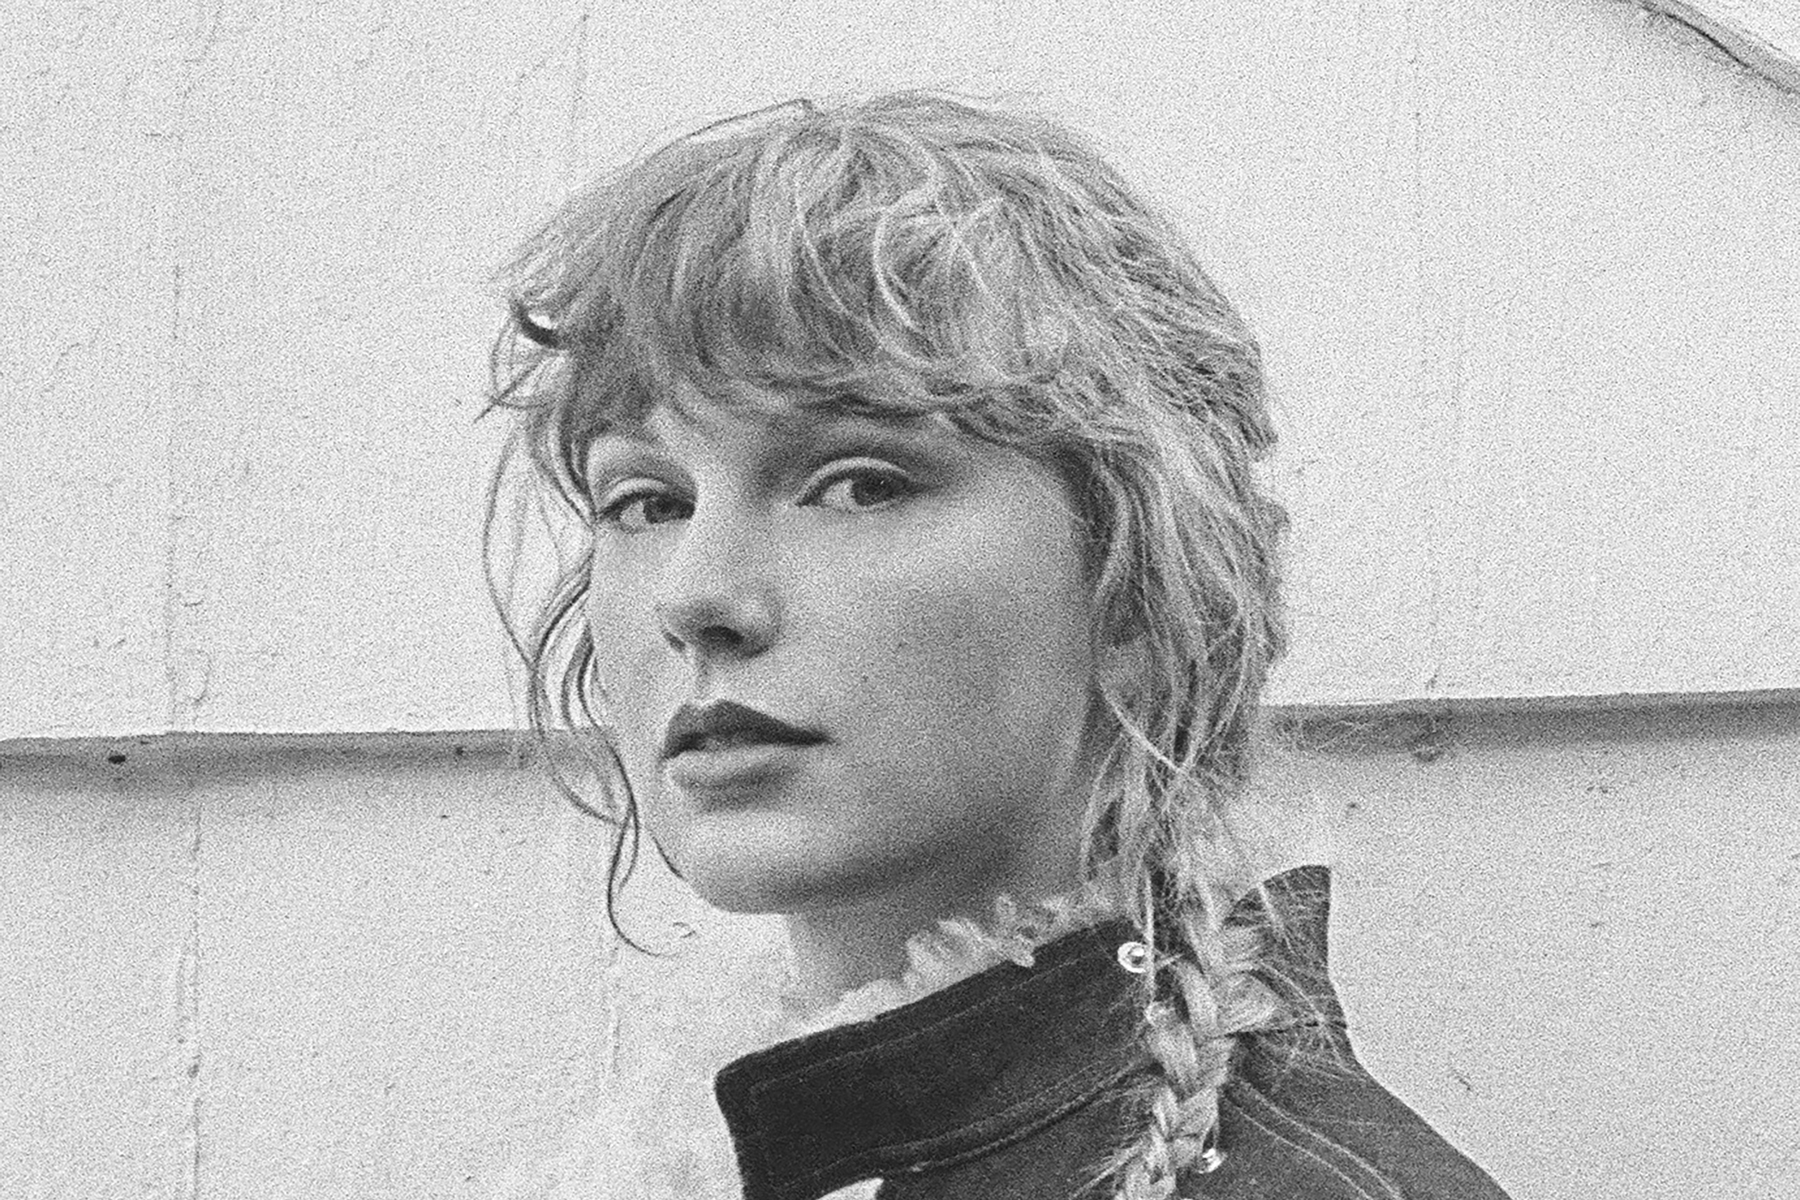 'Goodbye Earl' to Emily Dickinson: A Rundown of Taylor Swift's Influences on 'Evermore' – Rolling Stone